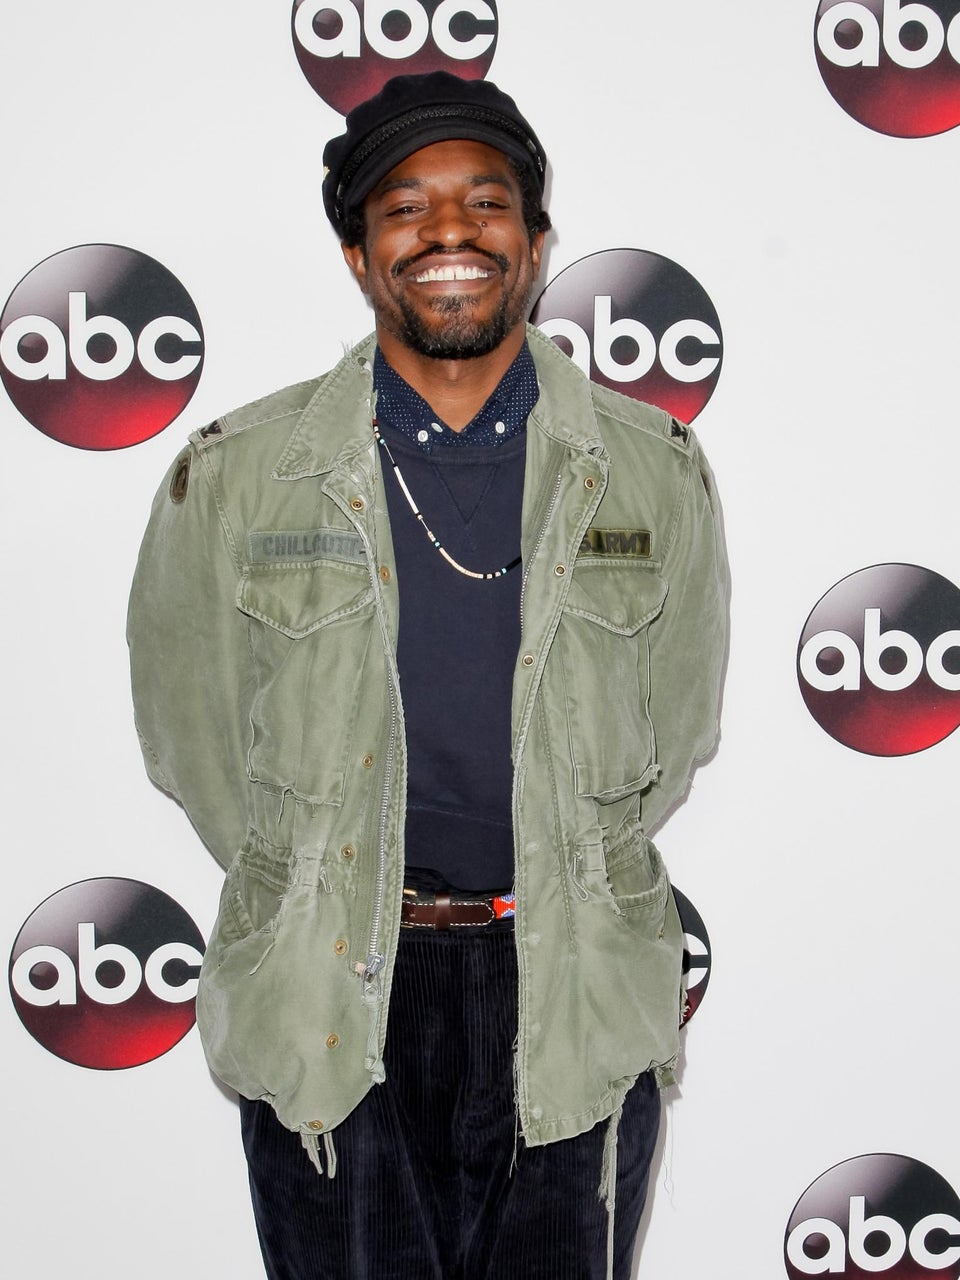 If This Photo Is Proof, Then Andre 3000 Is Working on an Album